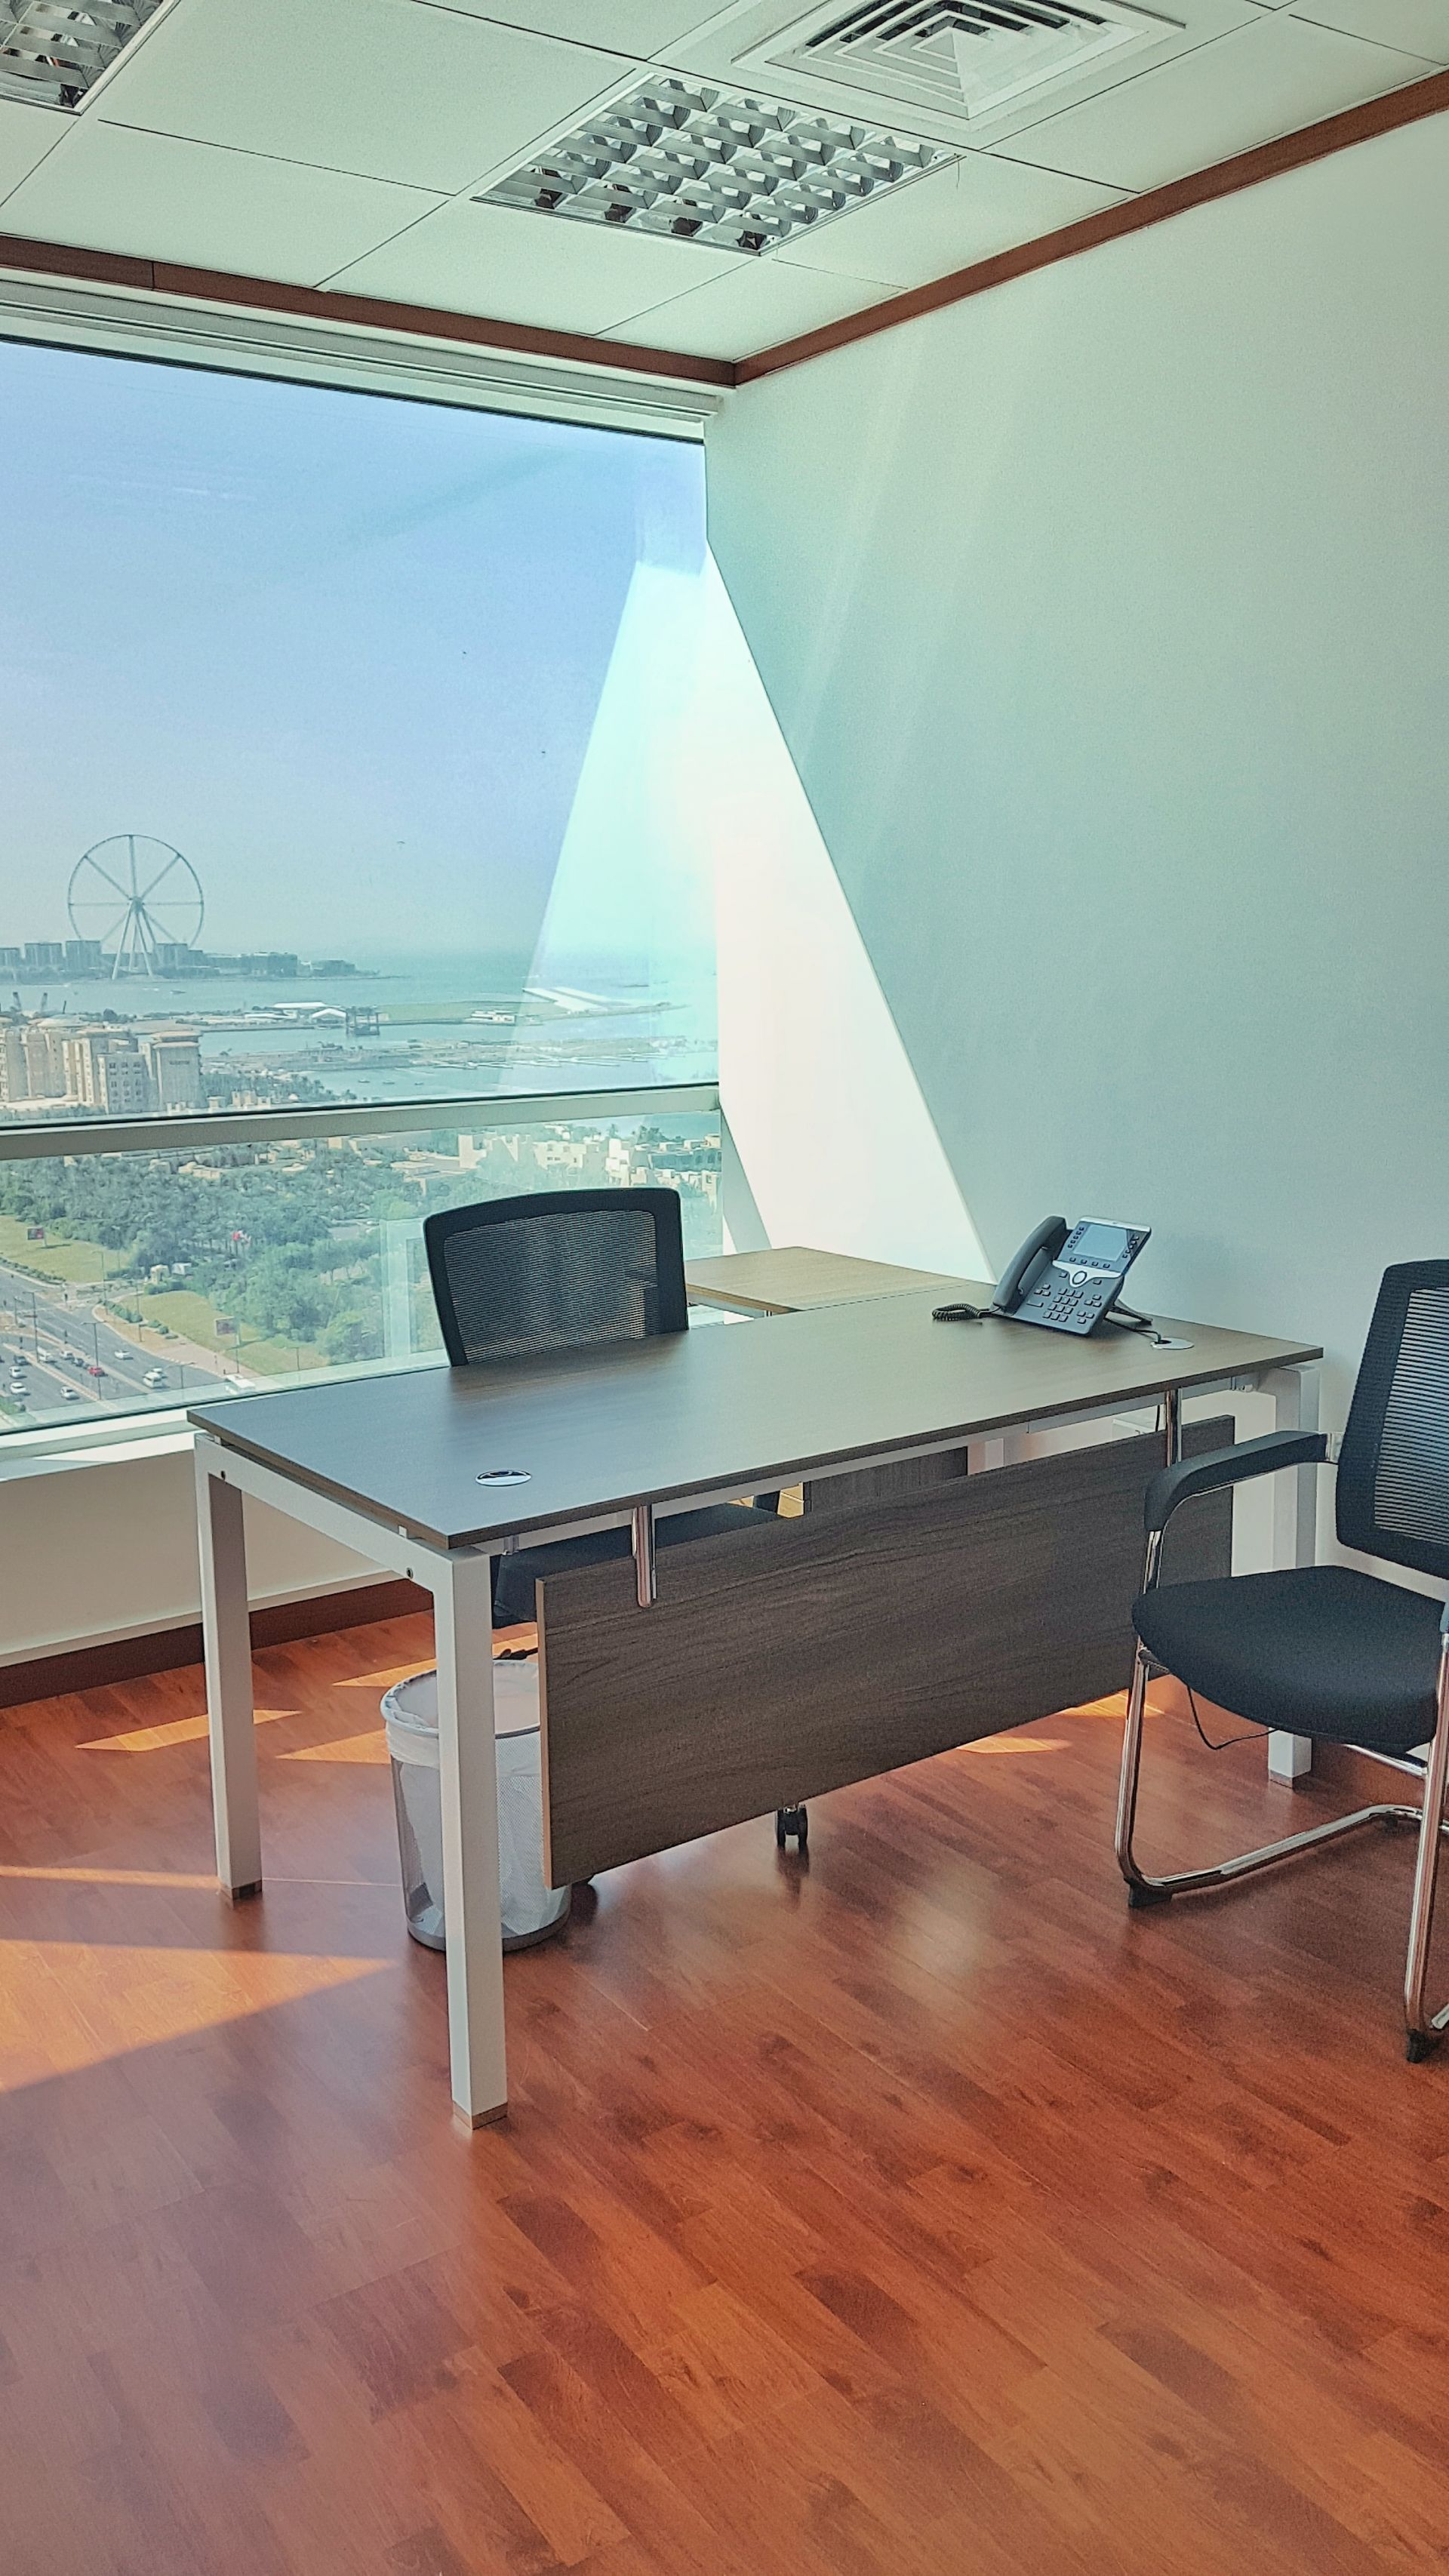 Asala Alkhaleej Business Center, Dubai - Book Online - Coworker